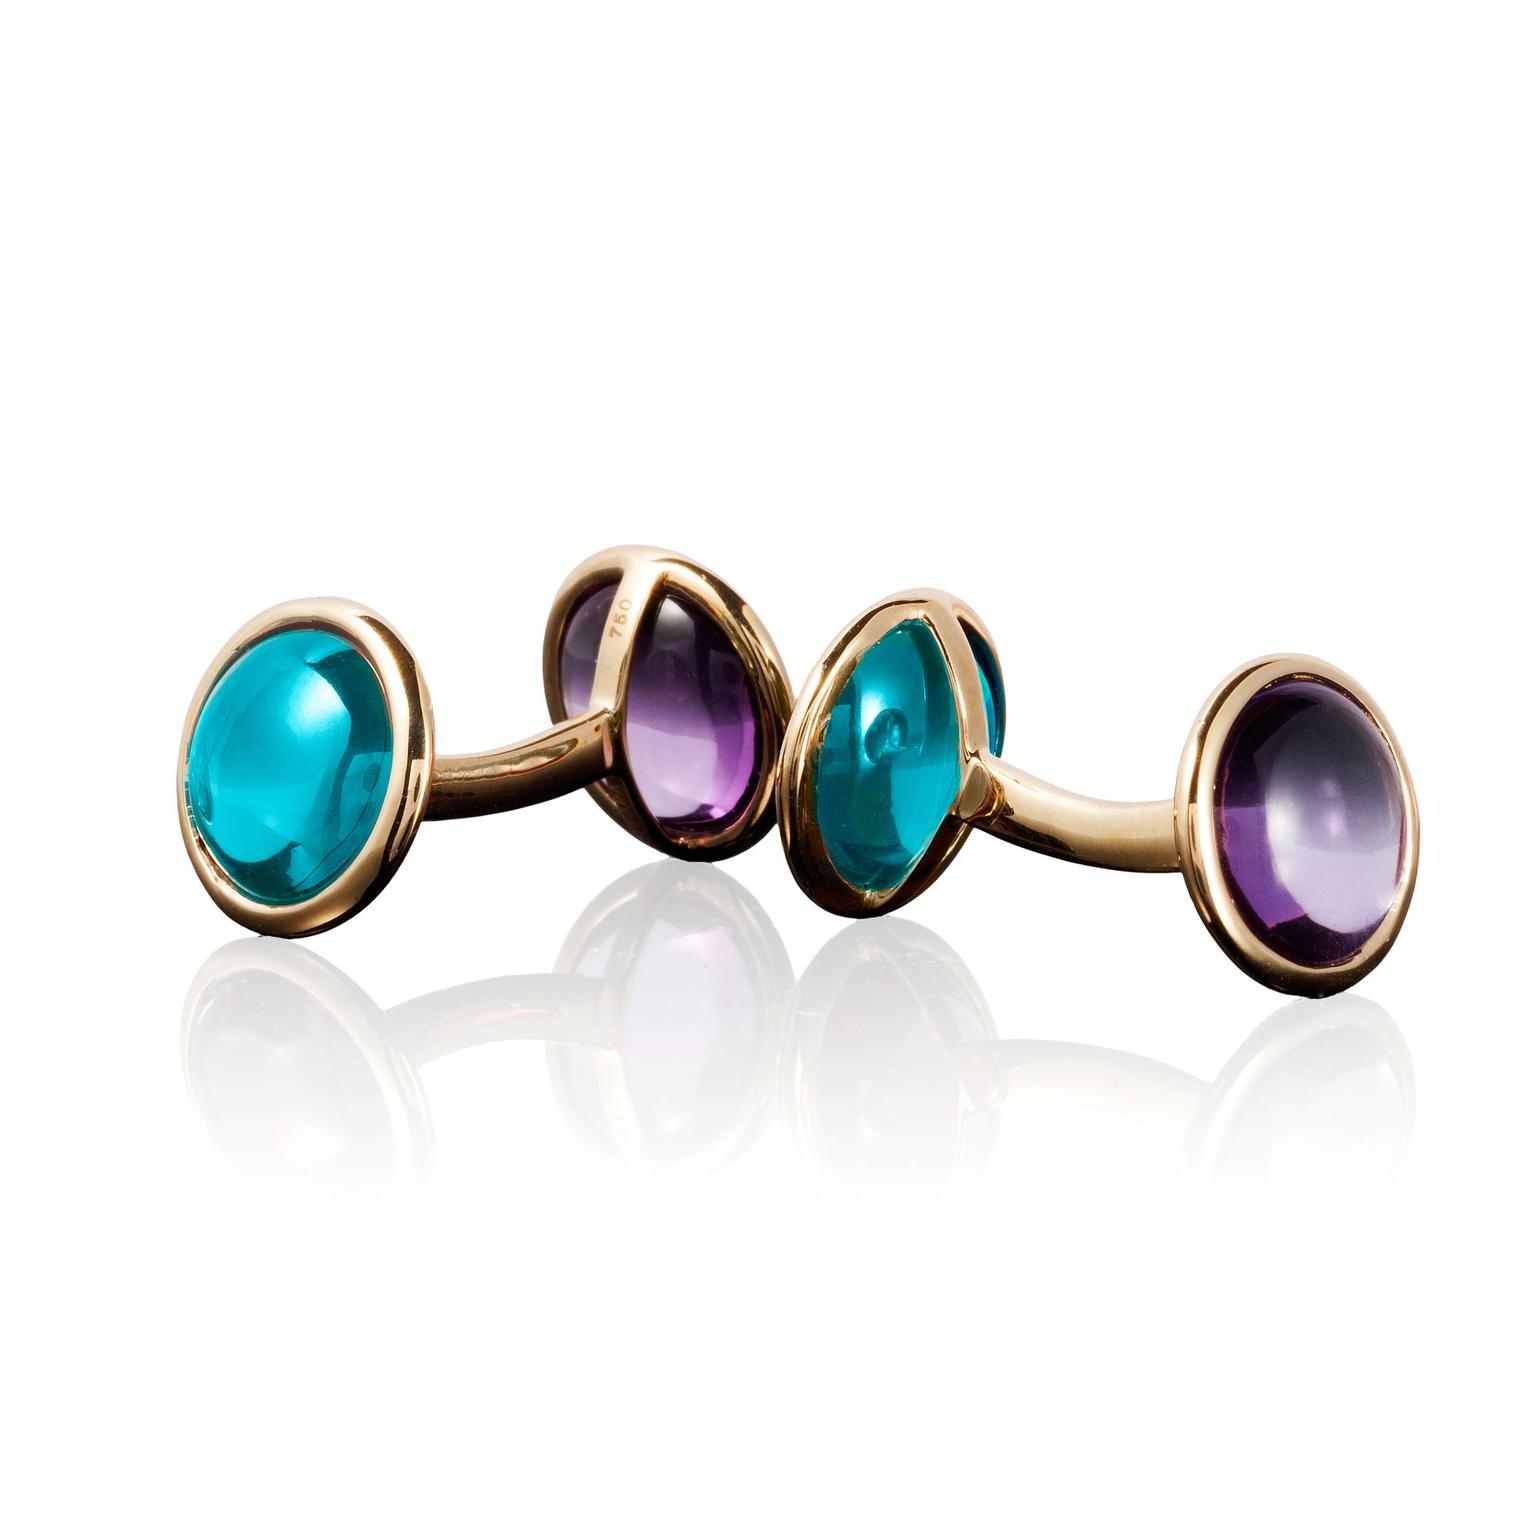 Goshwara amethyst and blue topaz cufflinks